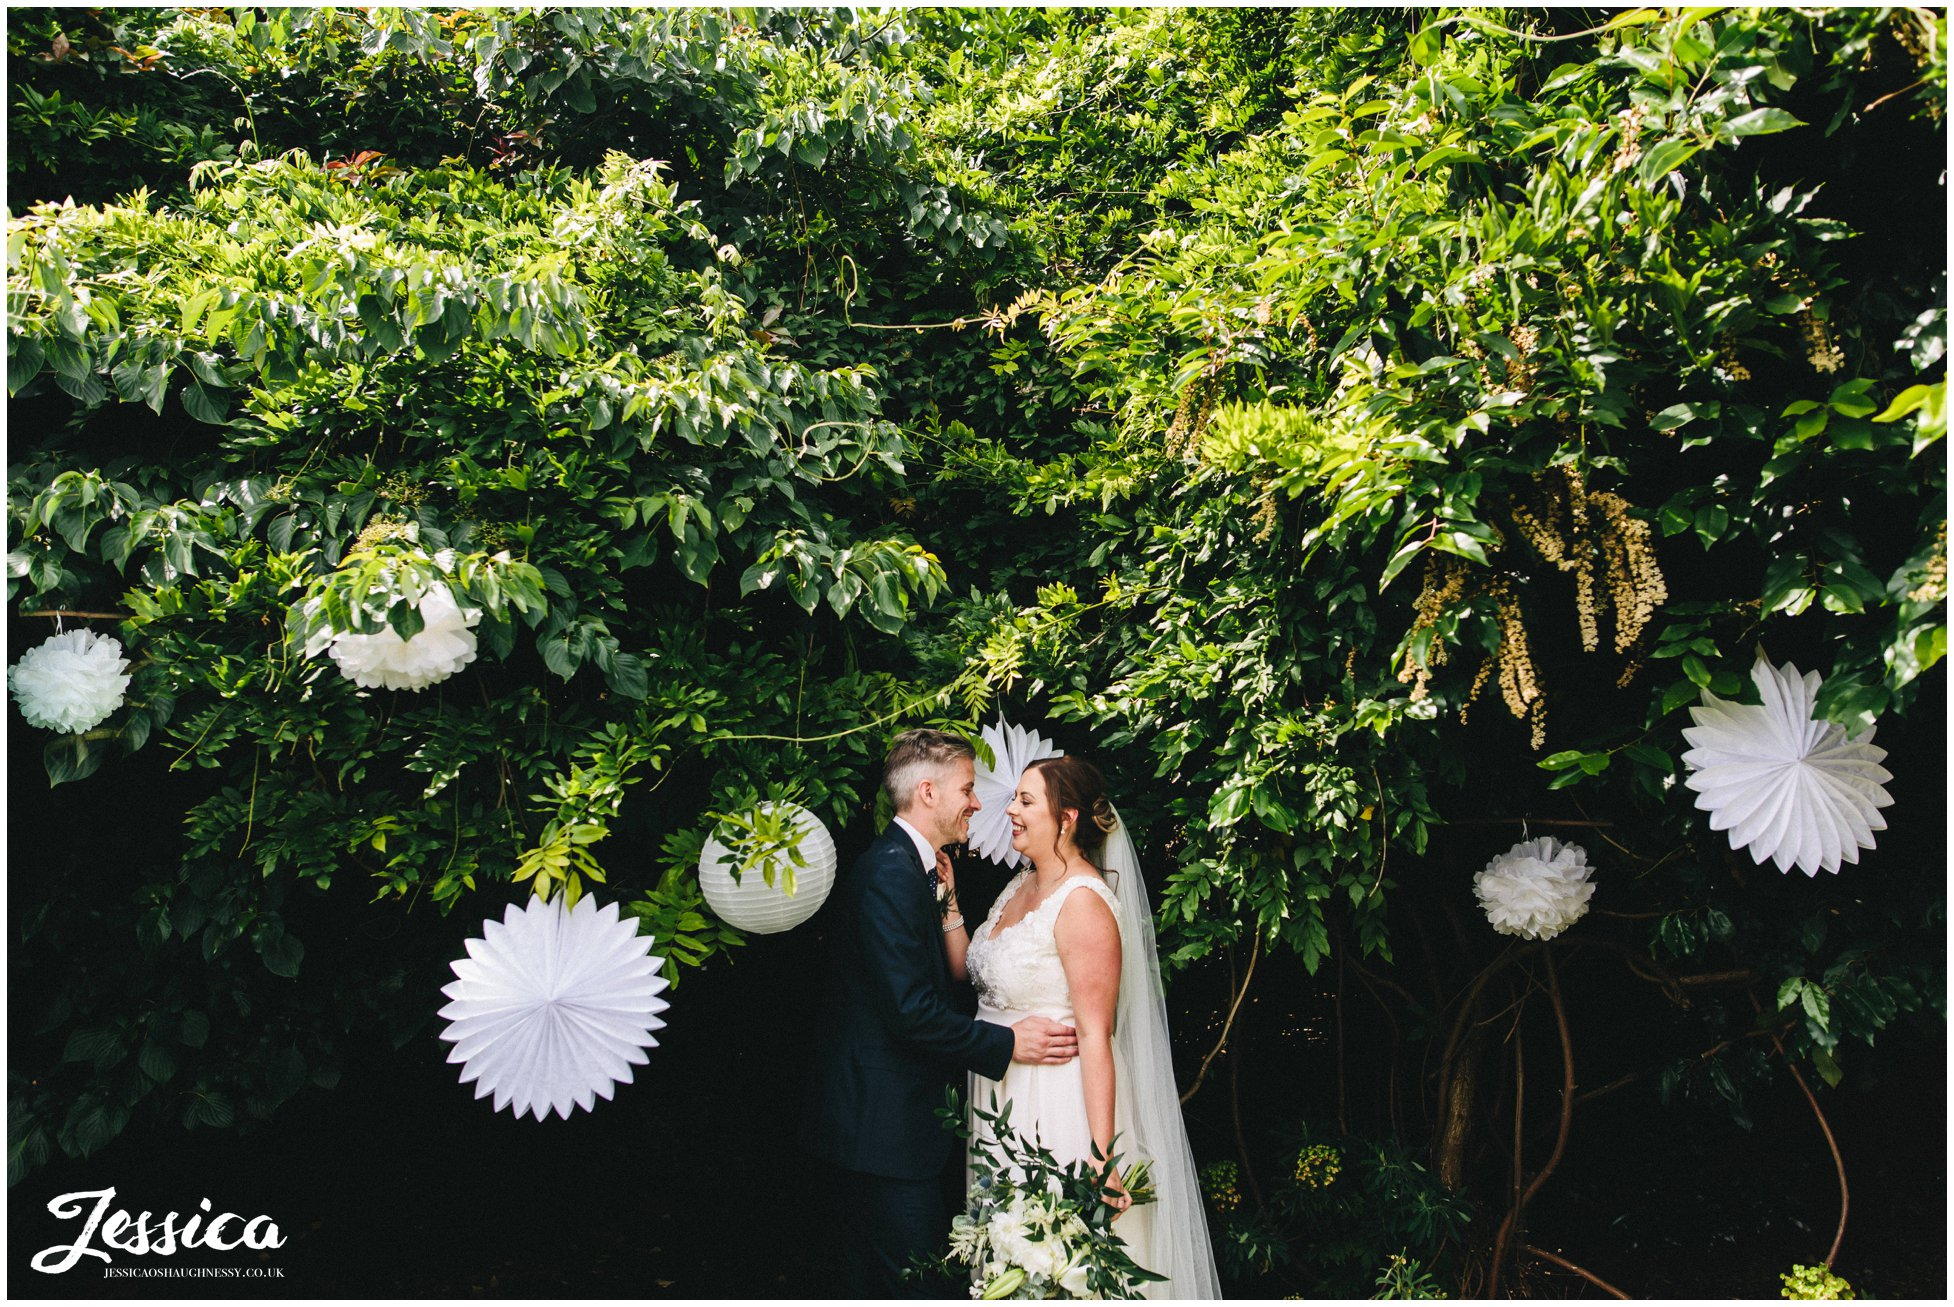 the couple kiss in front of the gardens decorated with paper lanterns